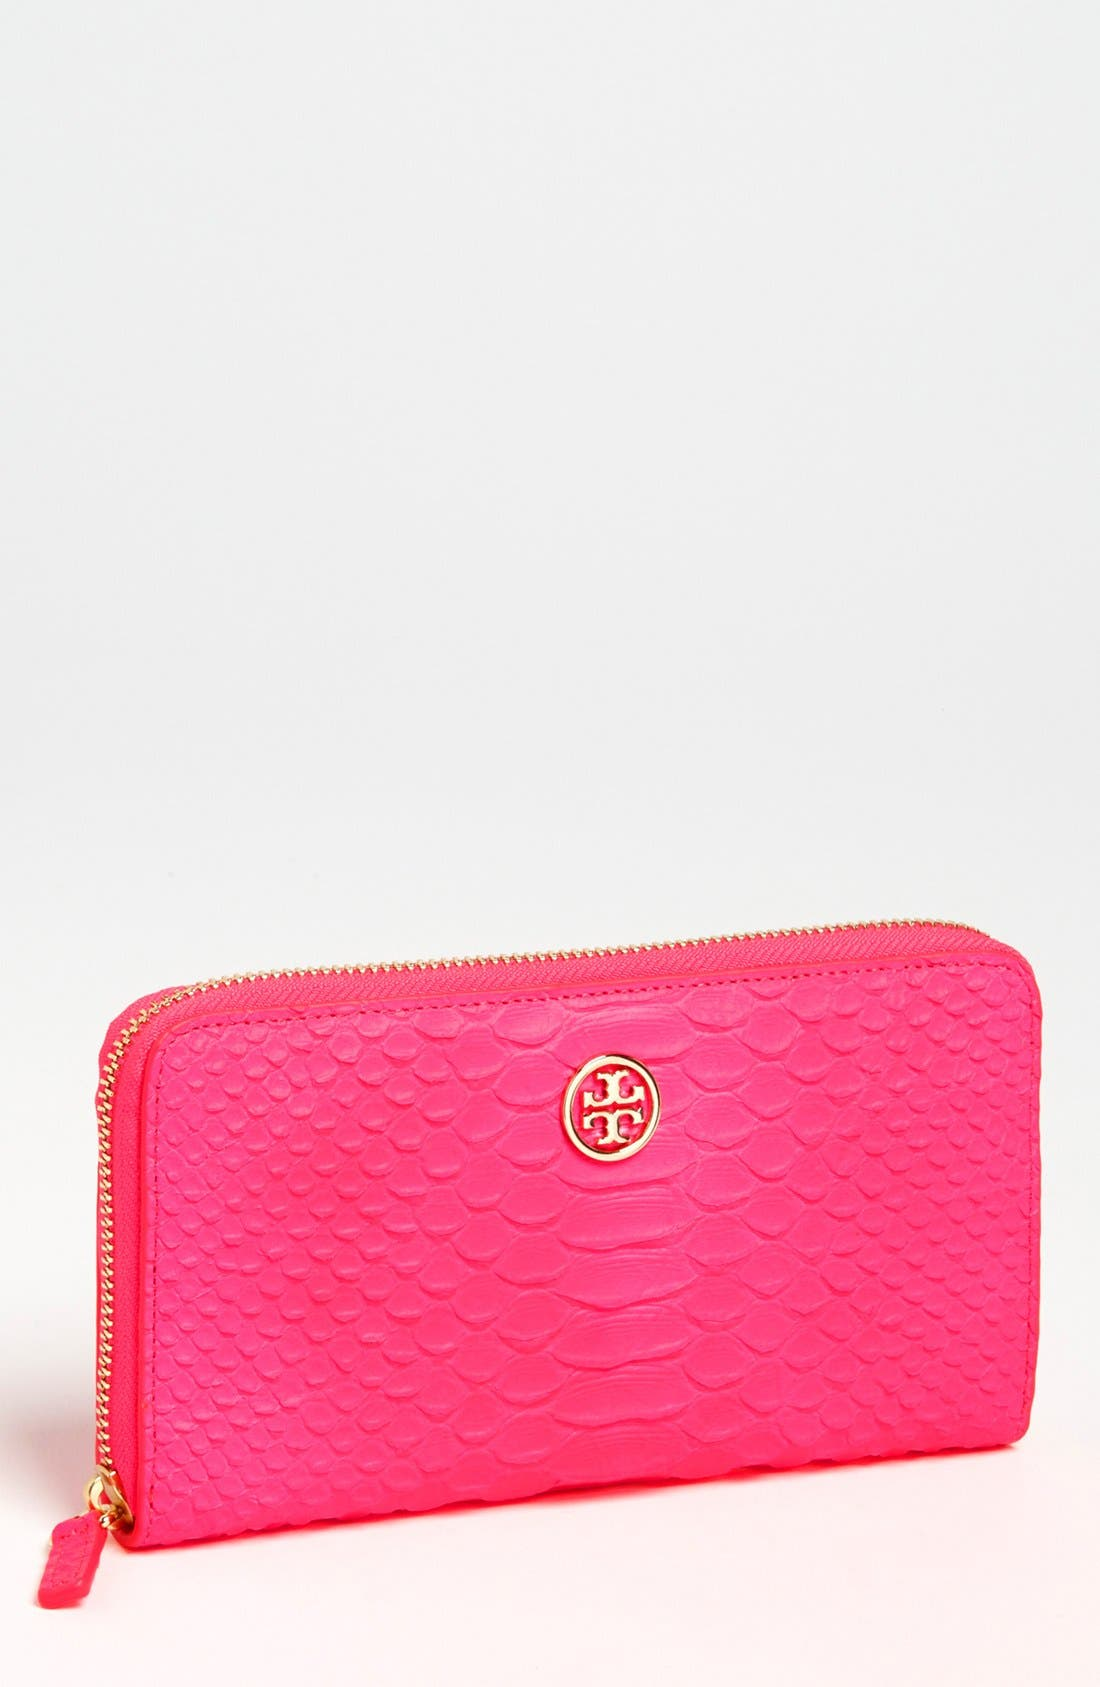 Alternate Image 1 Selected - Tory Burch 'Snake' Continental Wallet